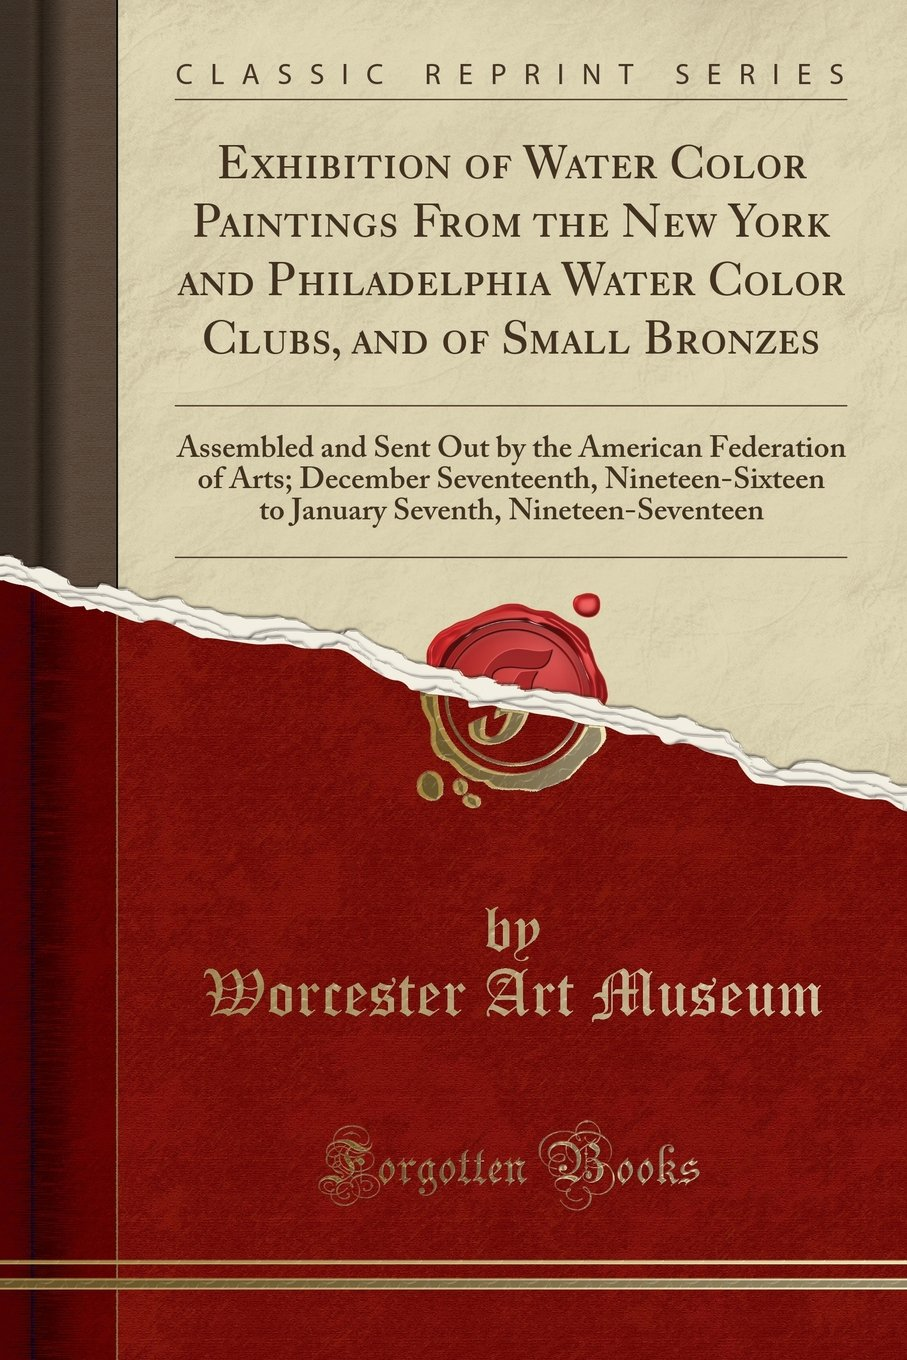 Download Exhibition of Water Color Paintings From the New York and Philadelphia Water Color Clubs, and of Small Bronzes: Assembled and Sent Out by the American ... to January Seventh, Nineteen-Seventeen pdf